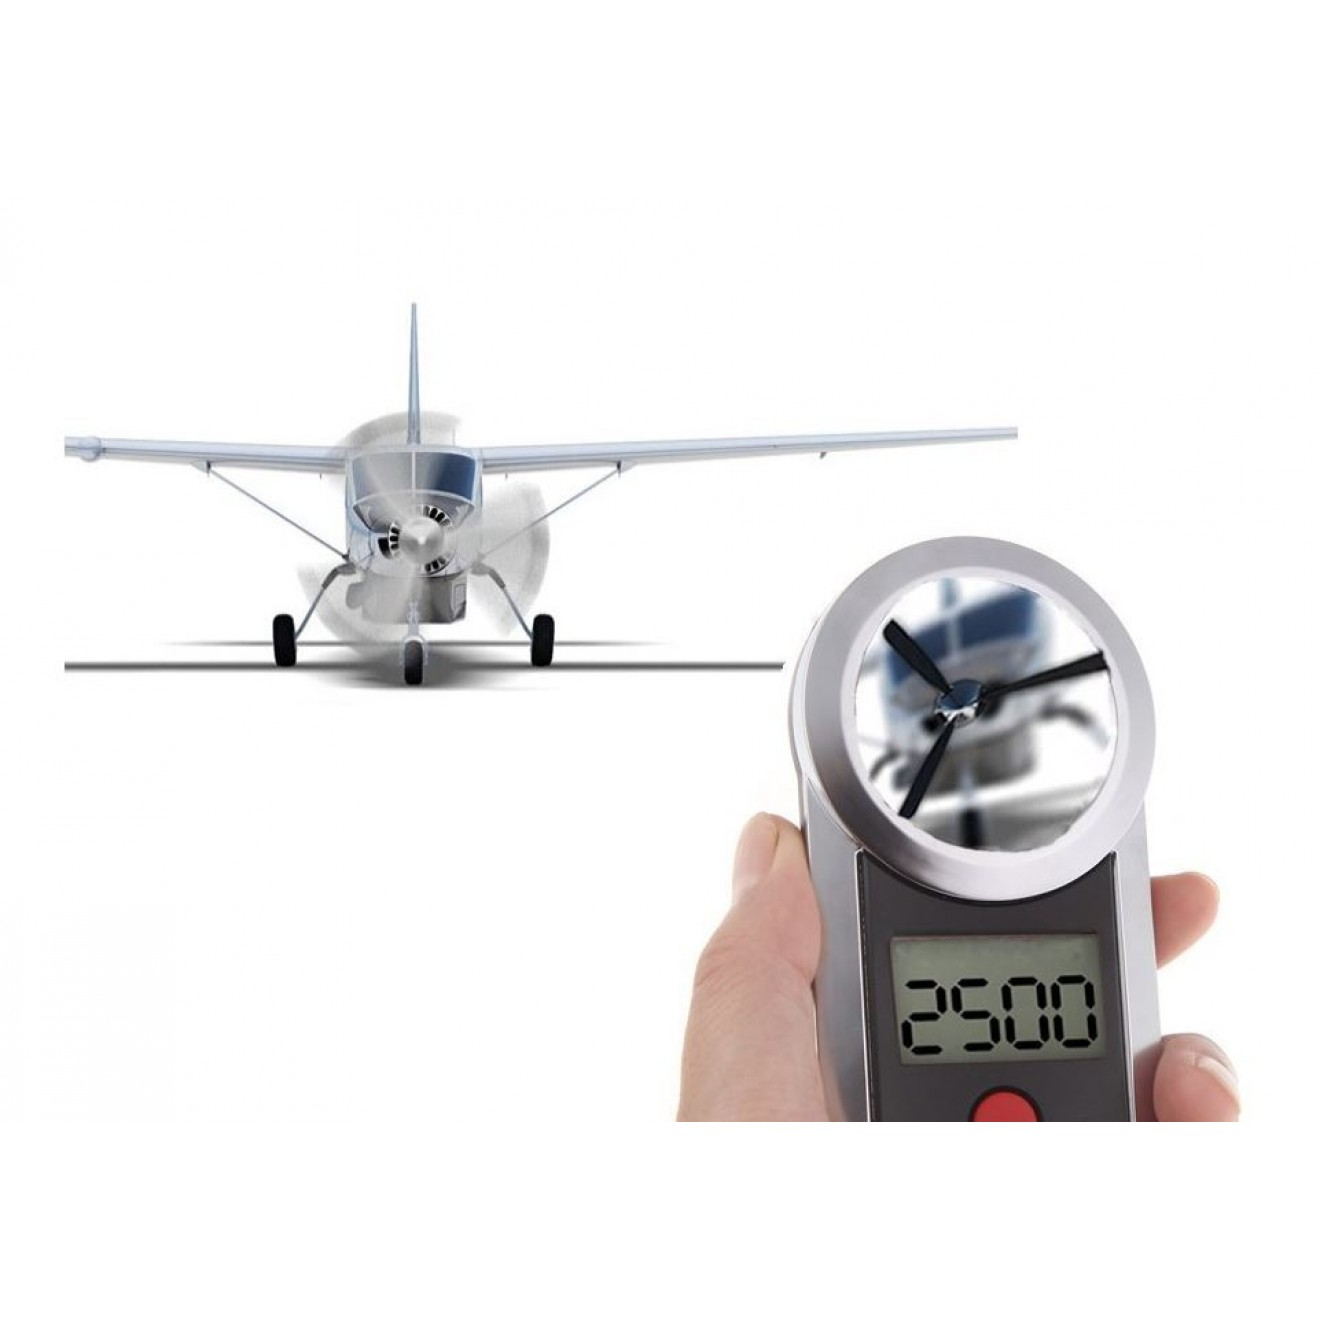 RCD3063 Helicopter Optical Tachometer V2